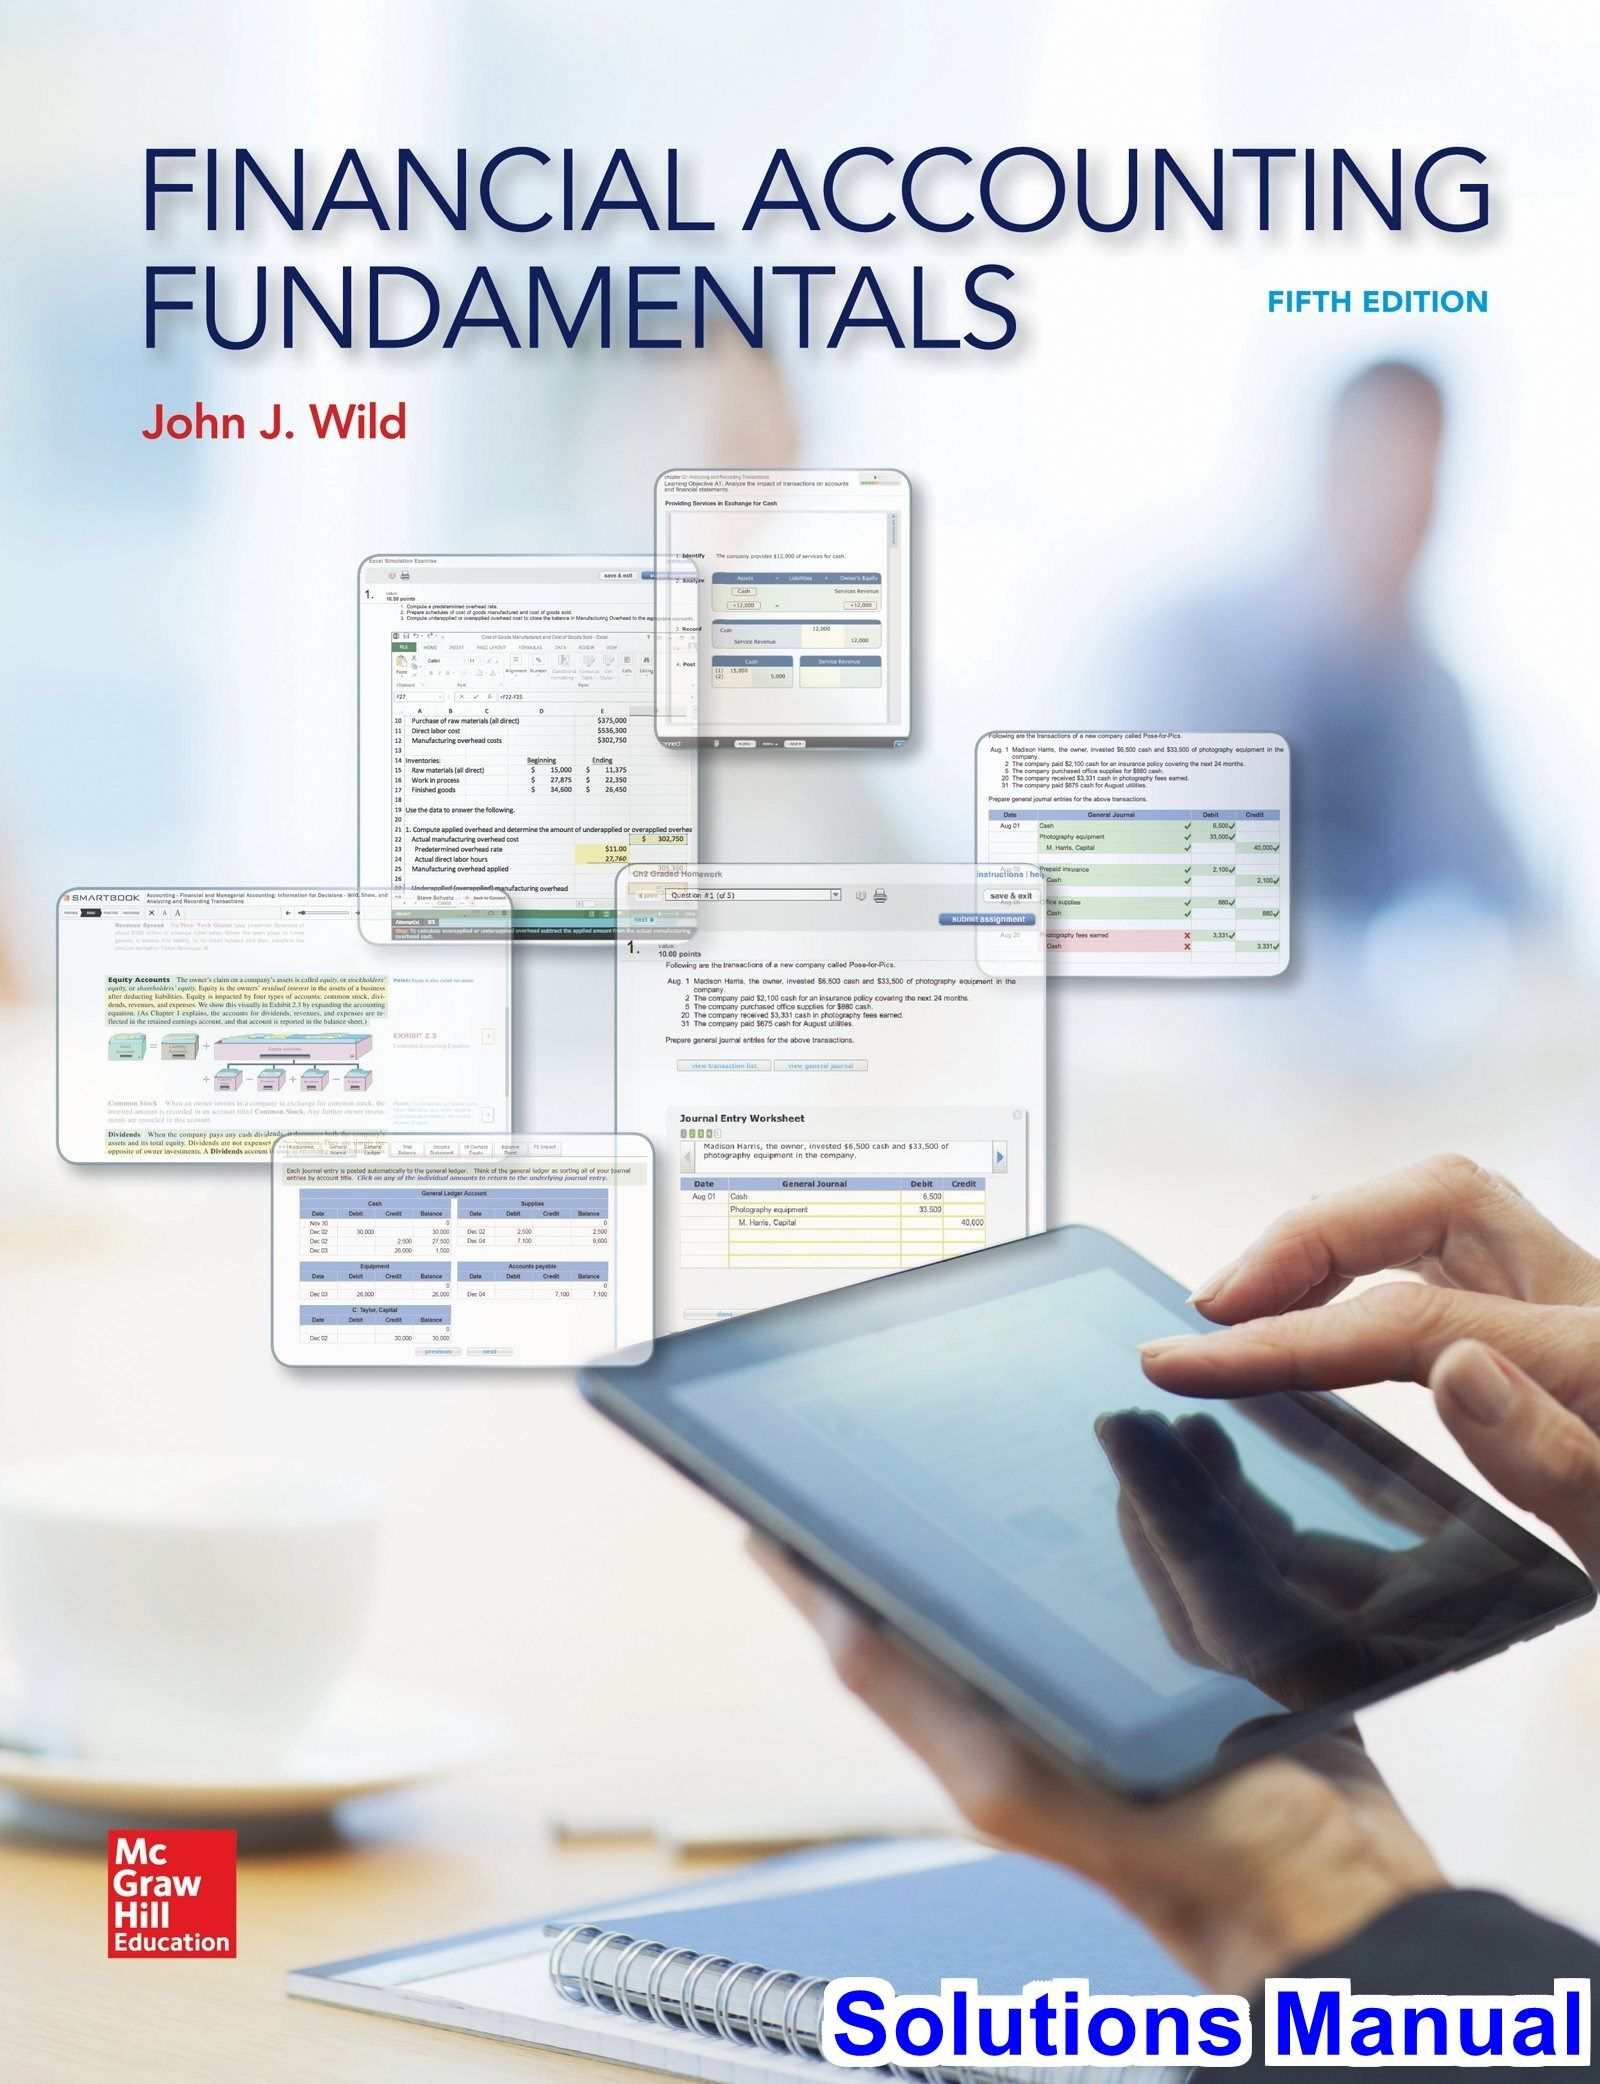 Solutions Manual for Financial Accounting Fundamentals 5th Edition by Wild